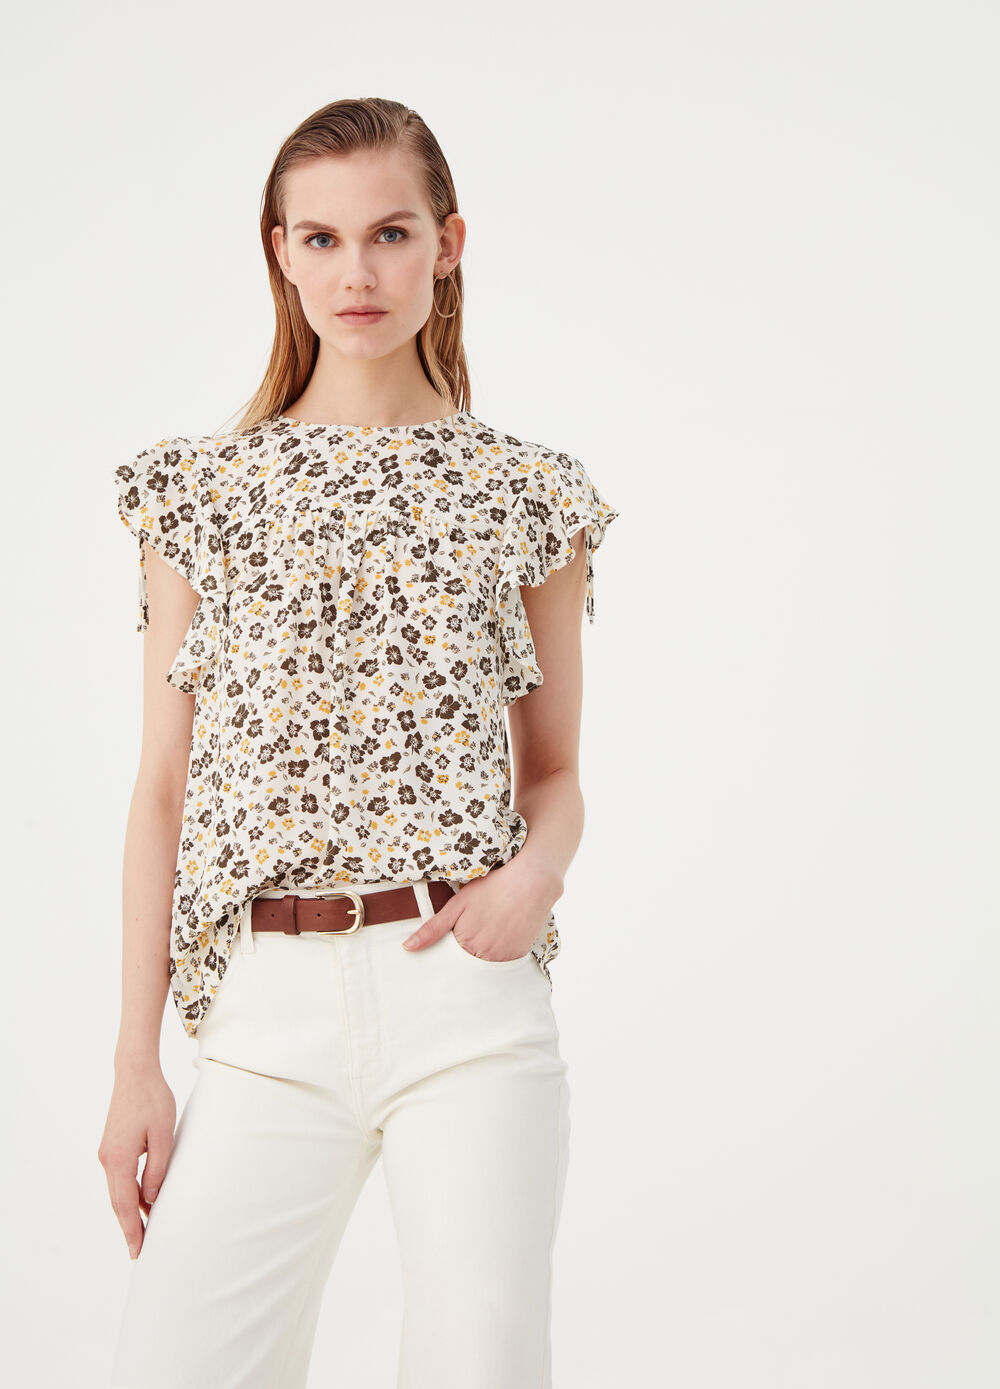 Blouse with frills and floral pattern